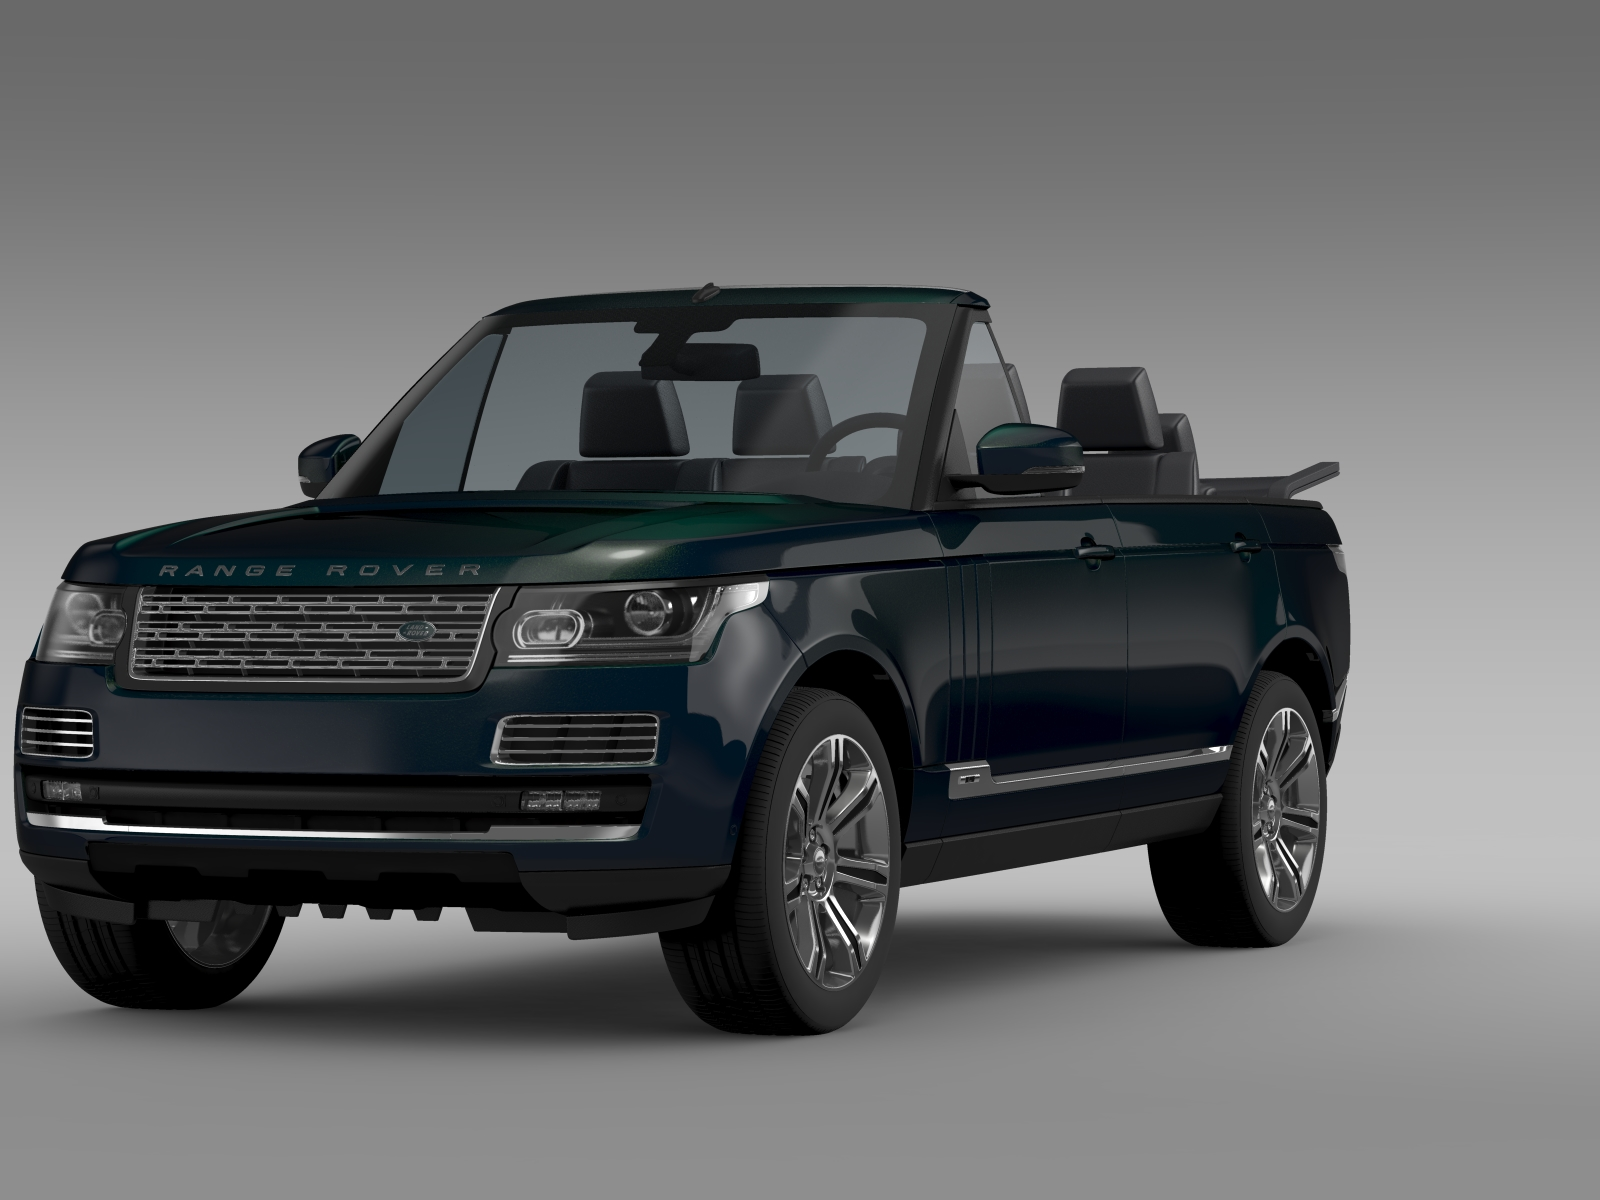 range rover autobiography black lwb cabrio l405 20 3d model buy range rover autobiography. Black Bedroom Furniture Sets. Home Design Ideas